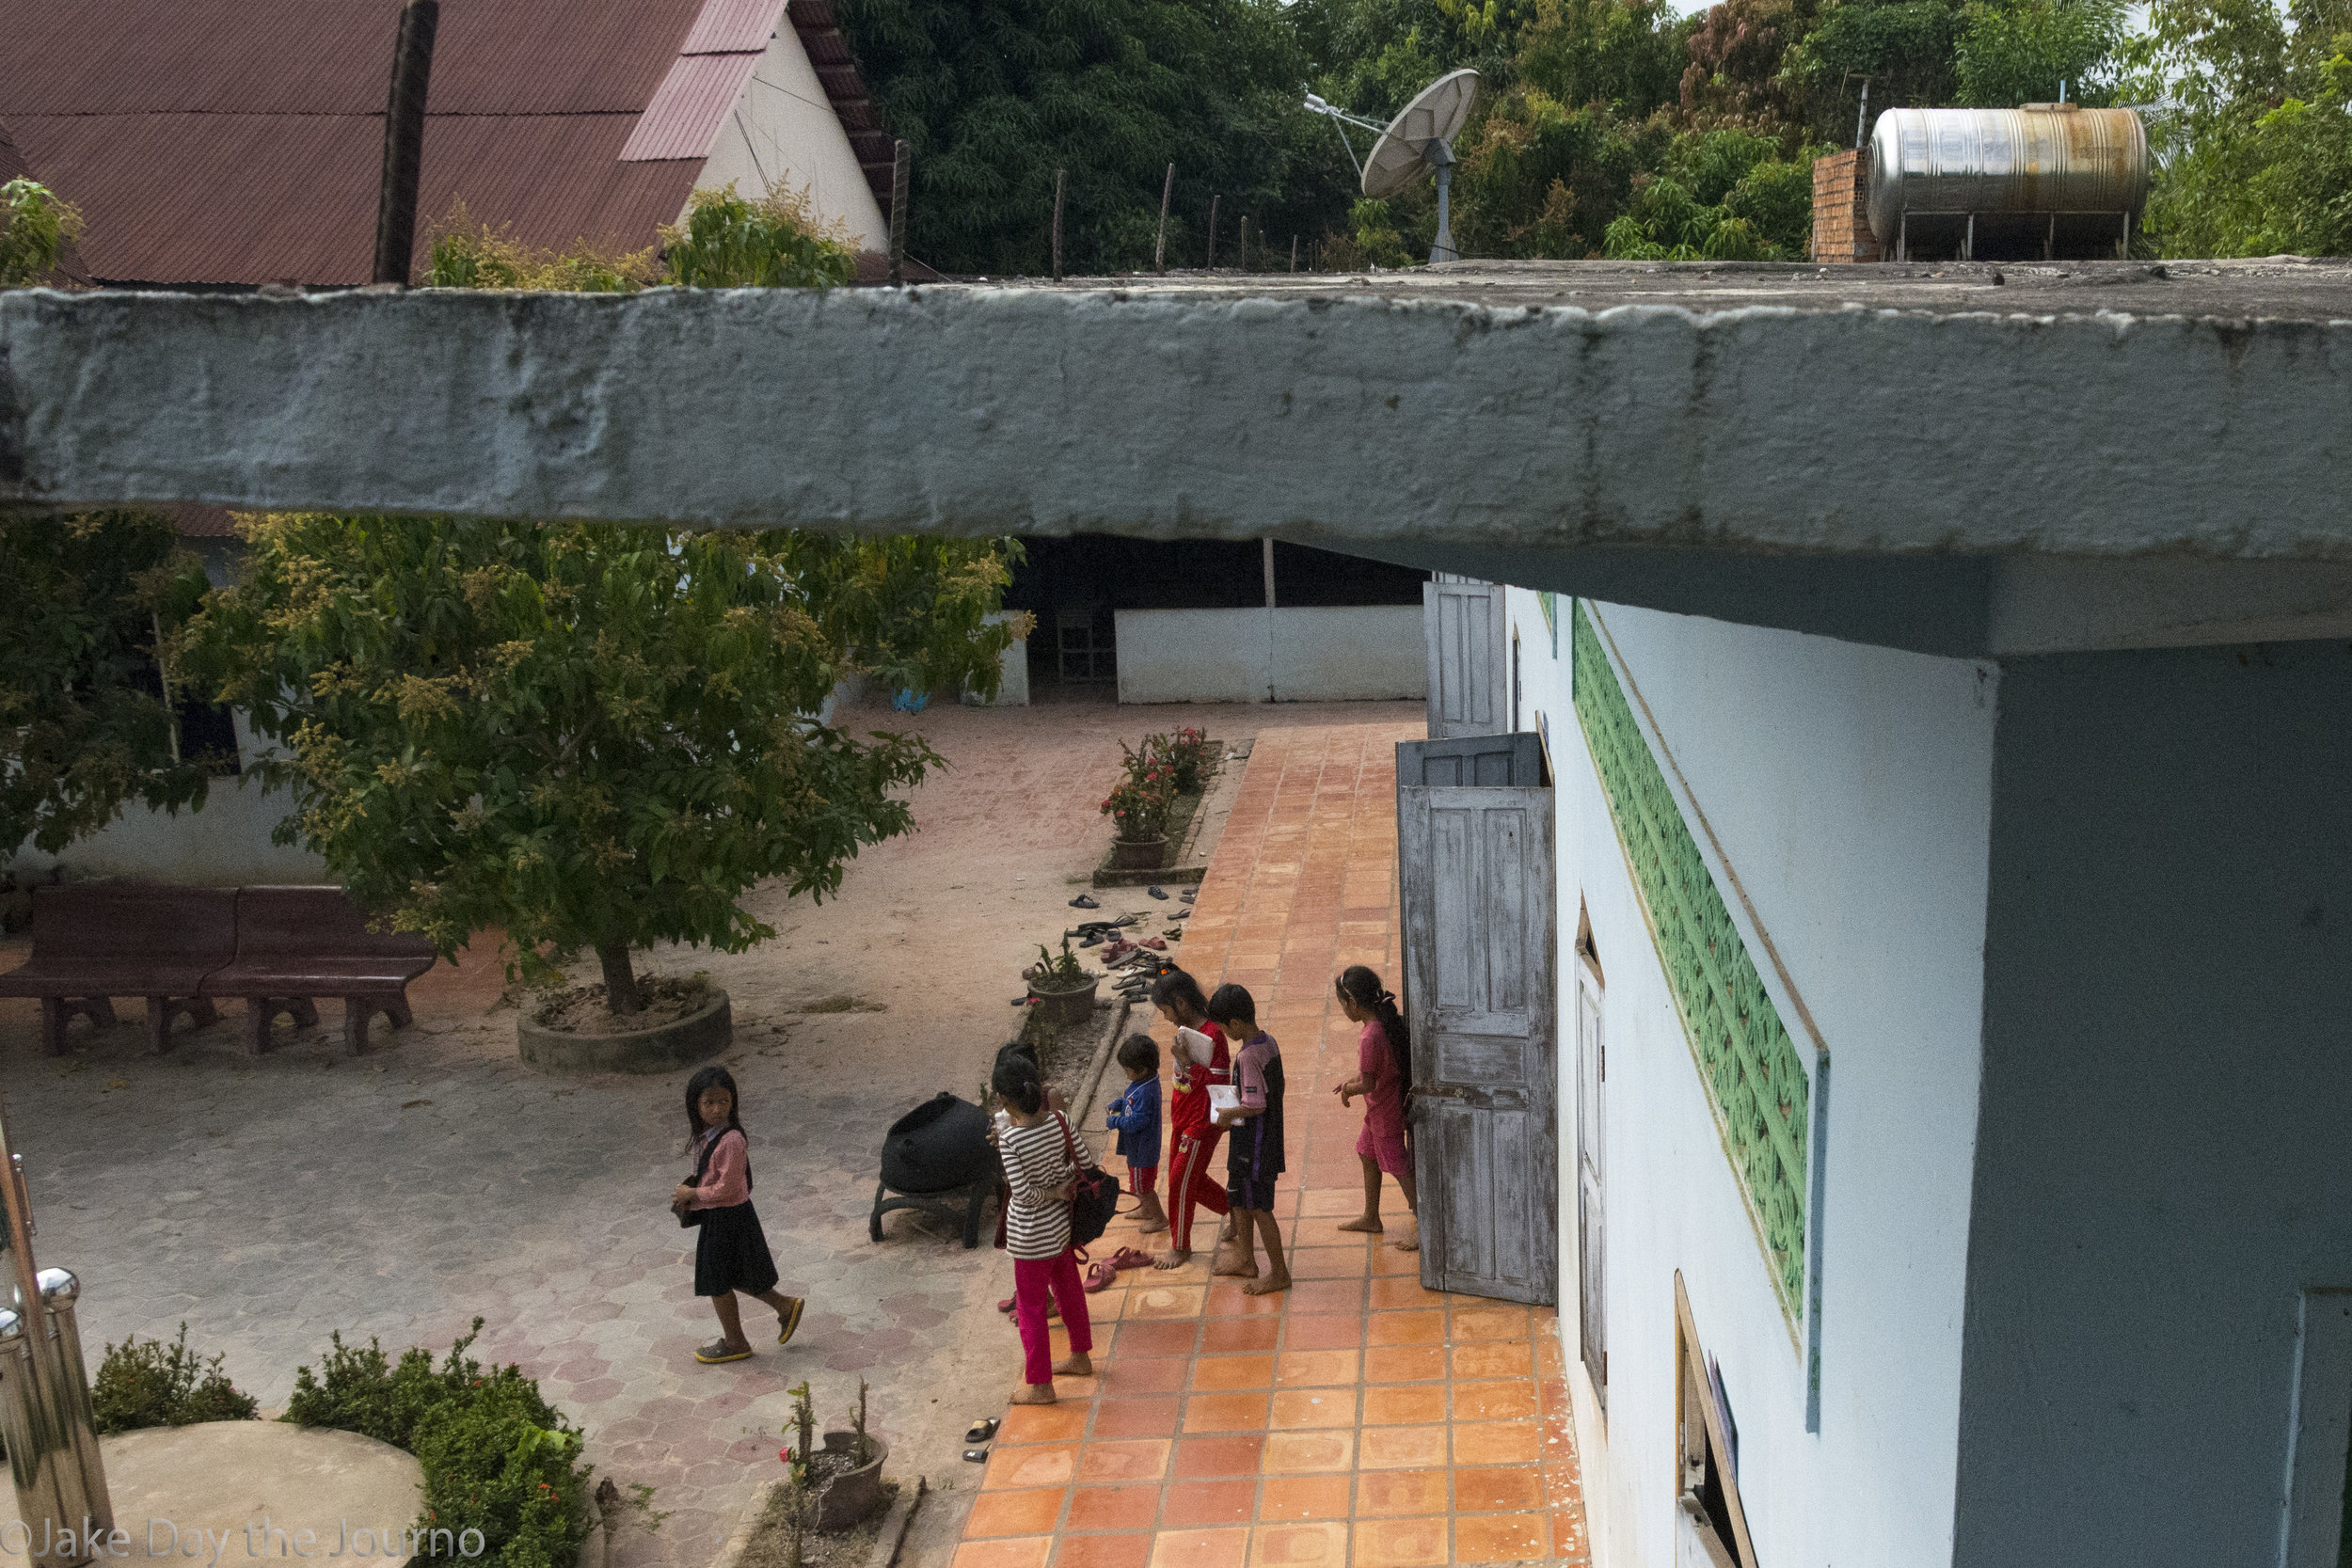 Children leave class for lunch at Savong's School, Don Teav Village, on 24/01/18 by Jake Day. The children go home during the middle of the day for lunch.